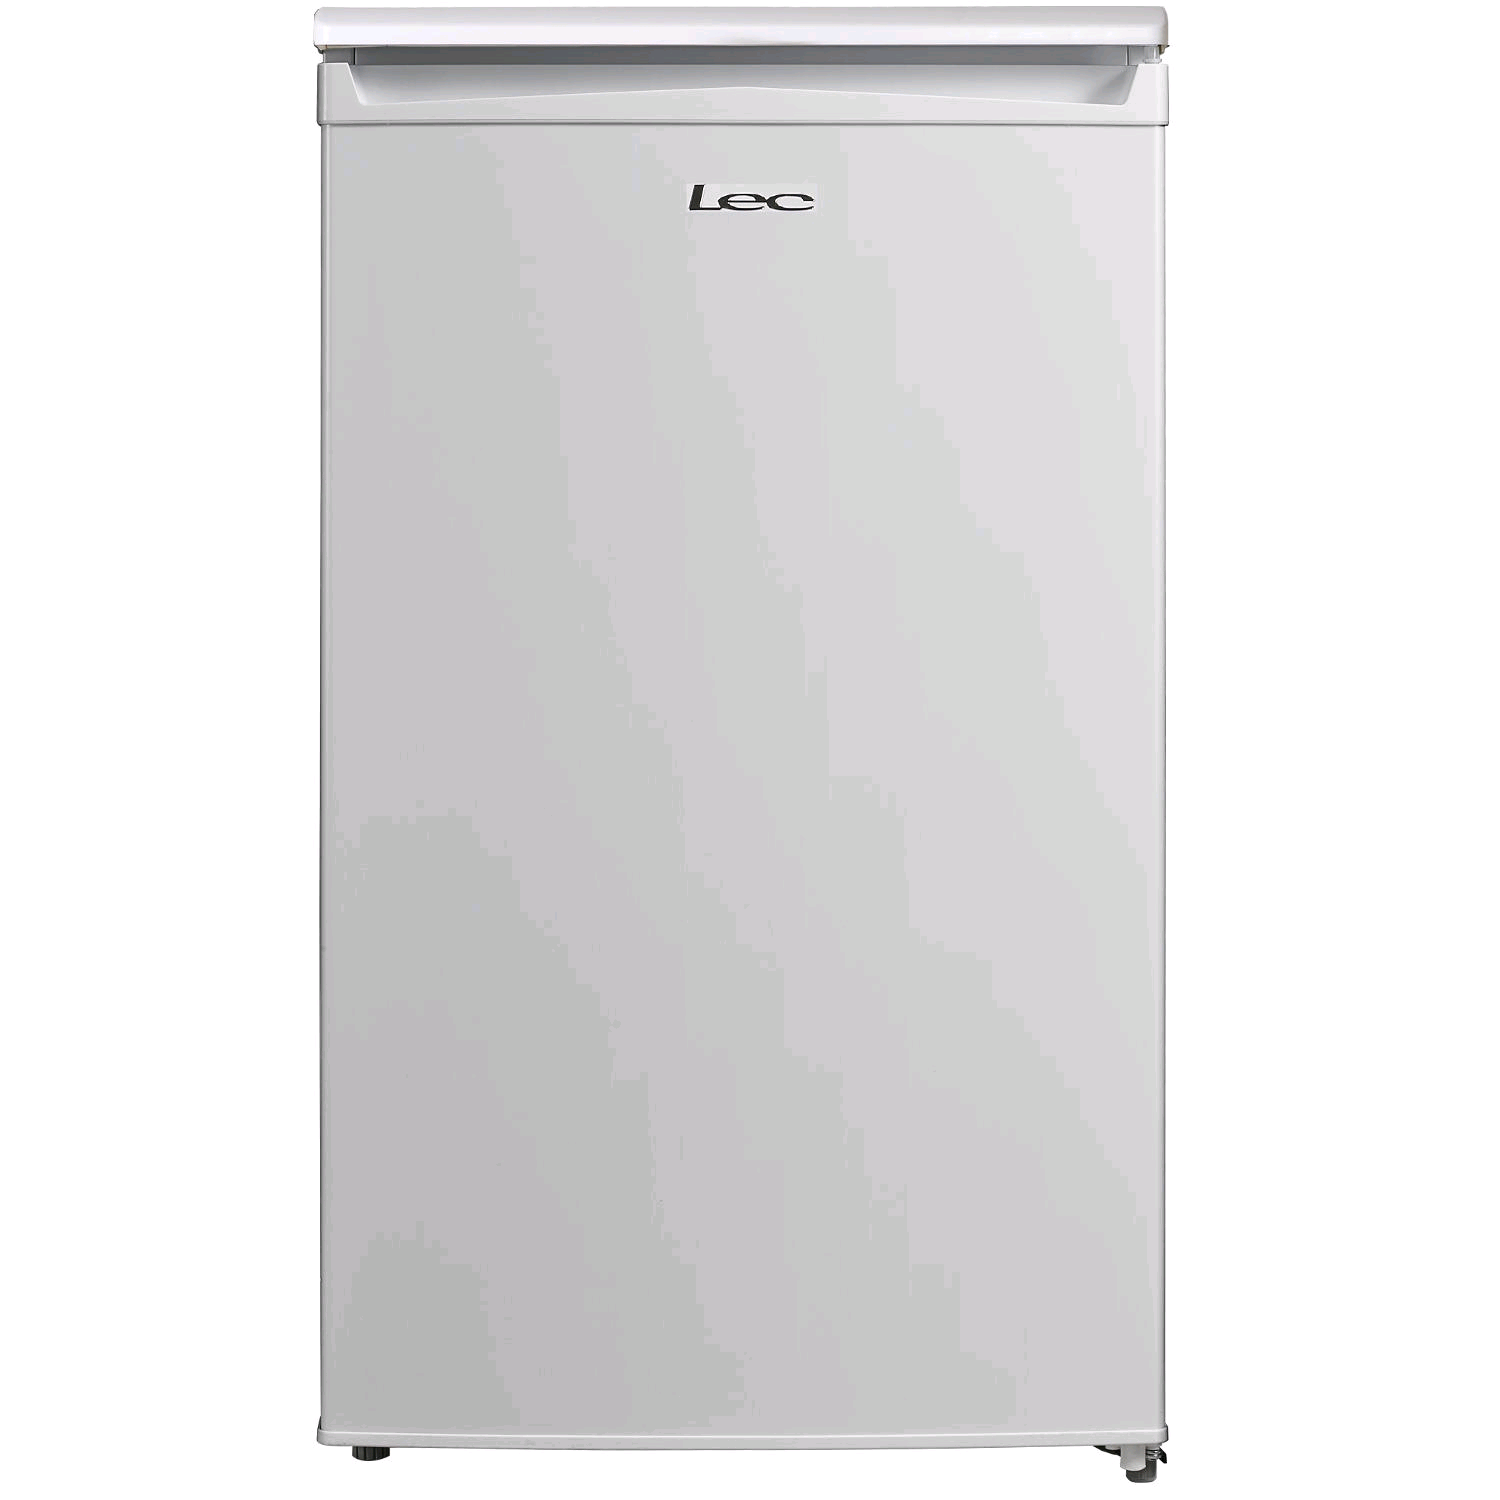 Lec 3.5Cft Fridge with 4Star Freezer Box H84.5 W50.1 D54cm